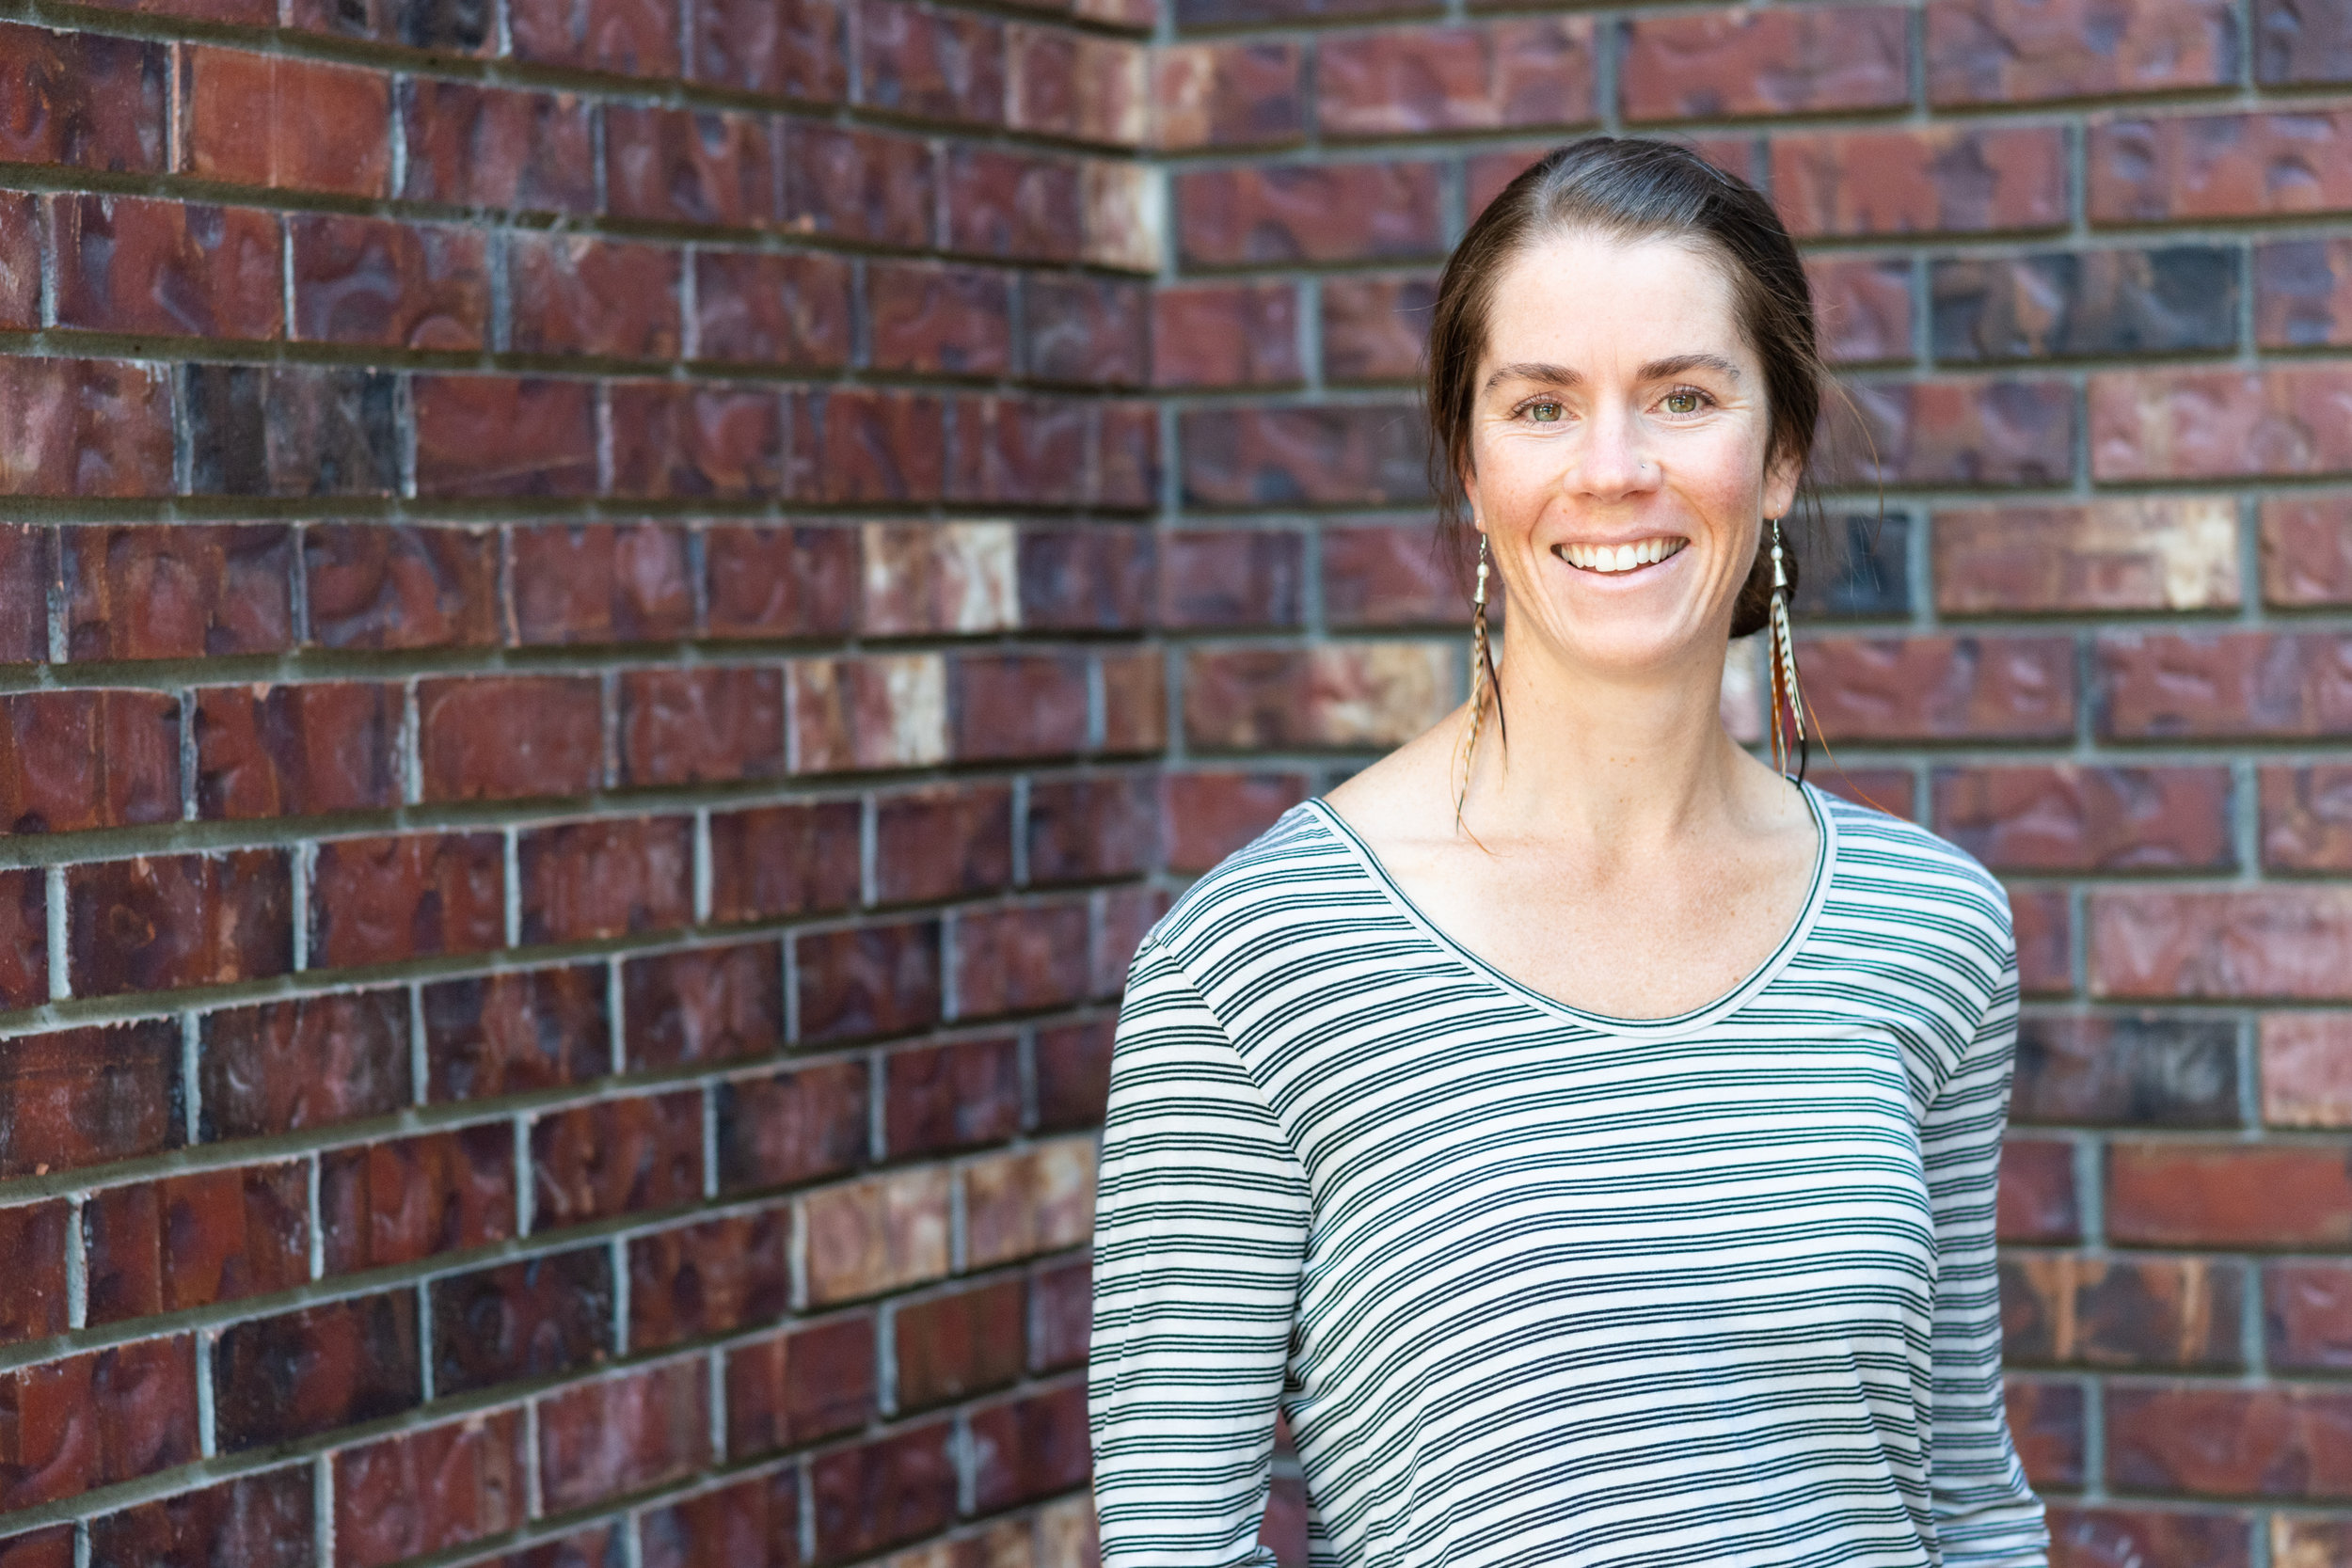 Sarah Frost-McKee - FOUNDER & CREATOR     Bend, OR    Sarah has always had a passion creating nutrient-dense taste treats with whole foods and local ingredients. Culinary school, travel, and constant meticulous experimentation in numerous kitchens led her to love and appreciate fermented foods. With organic nutrition at the forefront of her creative muse, fermentation became her template to find the perfect blend of incredible flavor and well being.